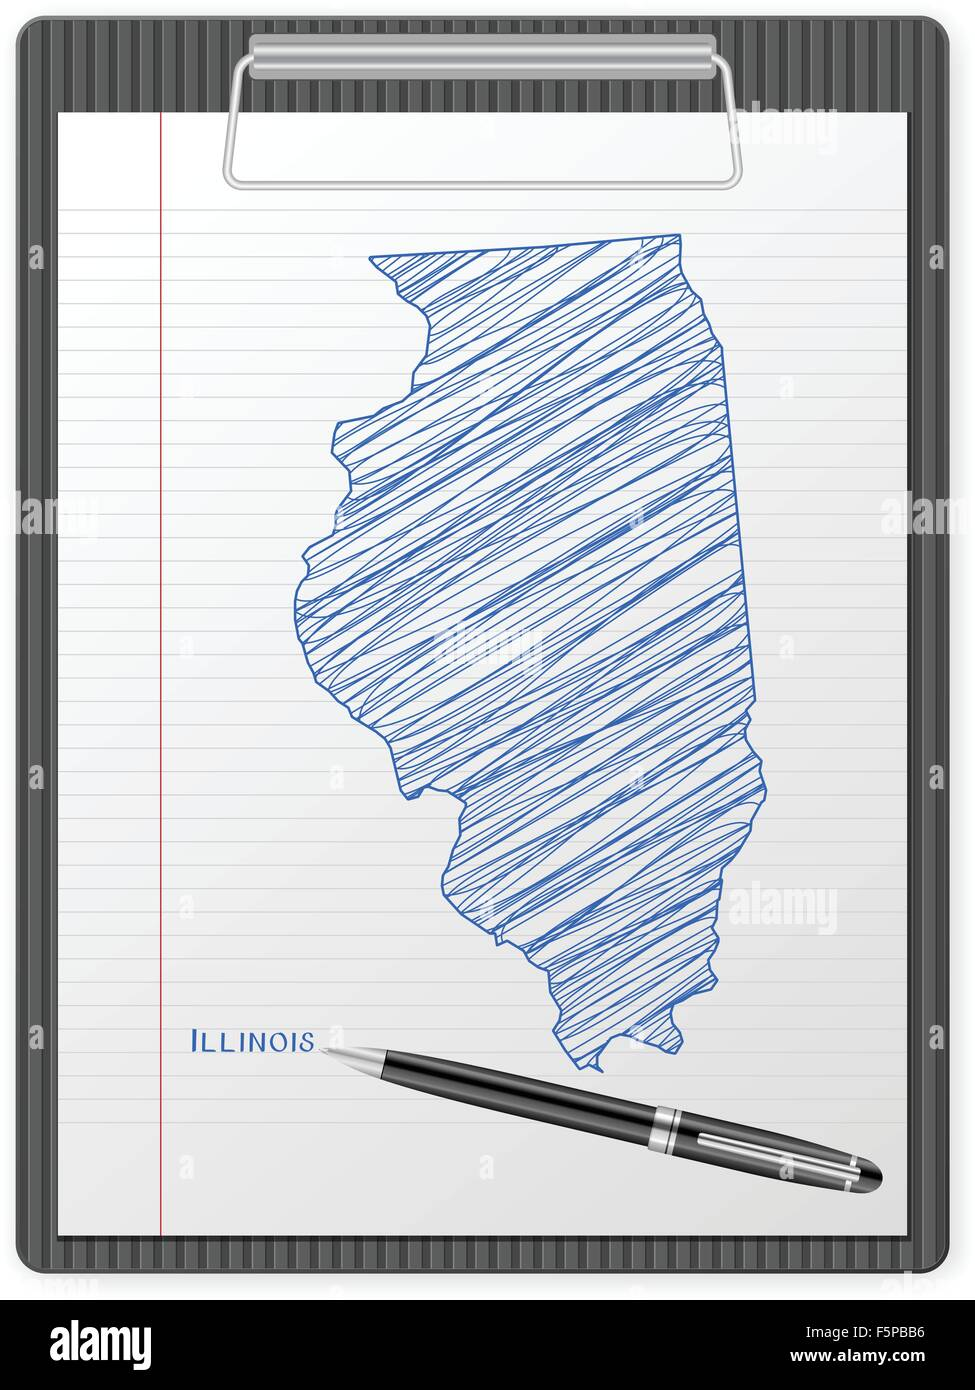 Clipboard with drawing Illinois map. Vector illustration. - Stock Vector